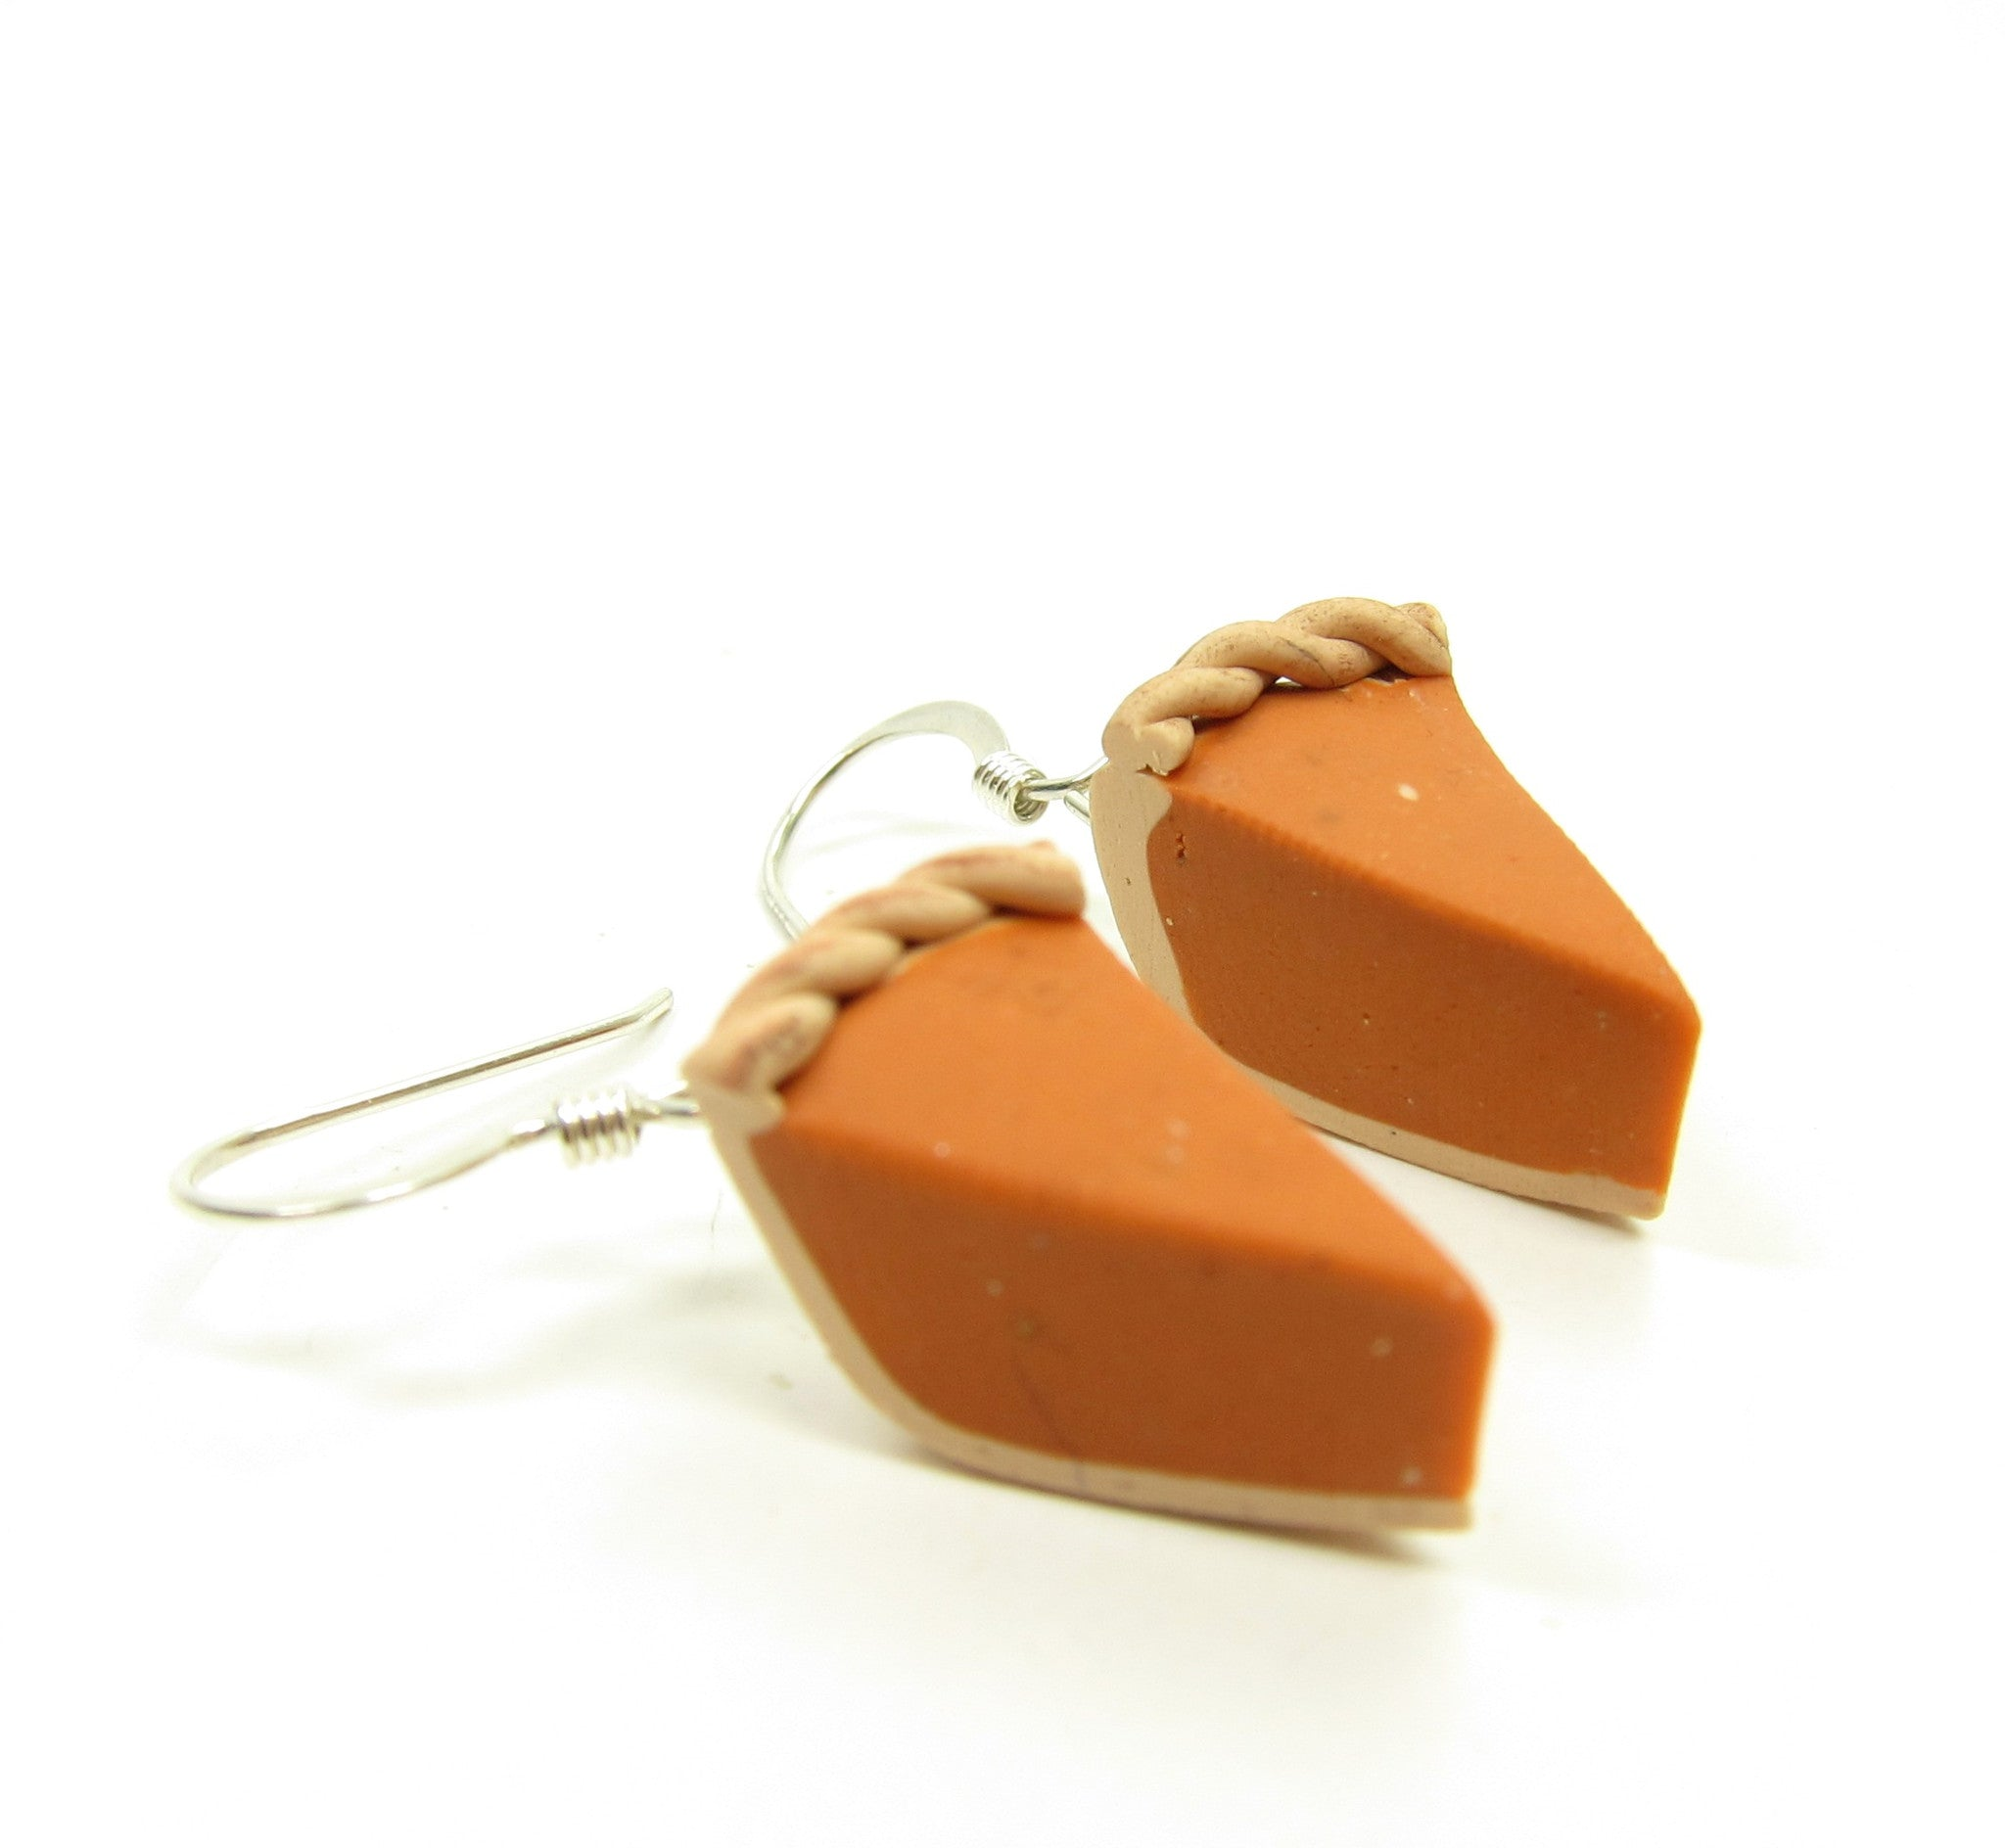 Polymer clay earrings with pumpkin pie slices